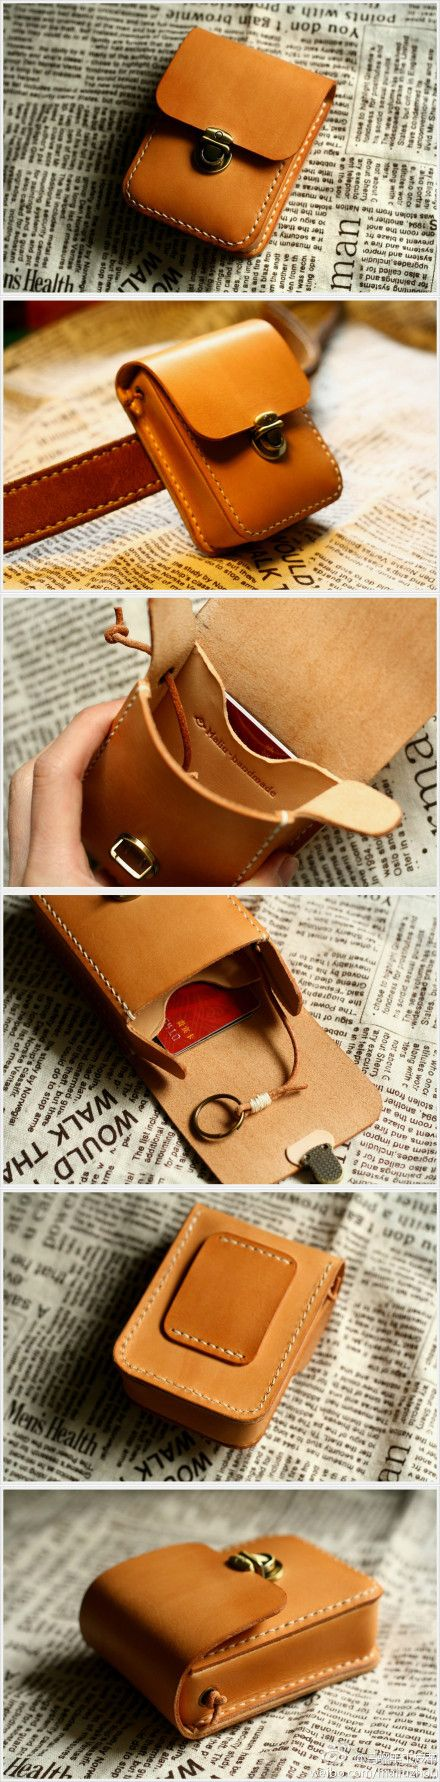 Monkey handmade leather microblog Sina Weibo - anytime minutes ...